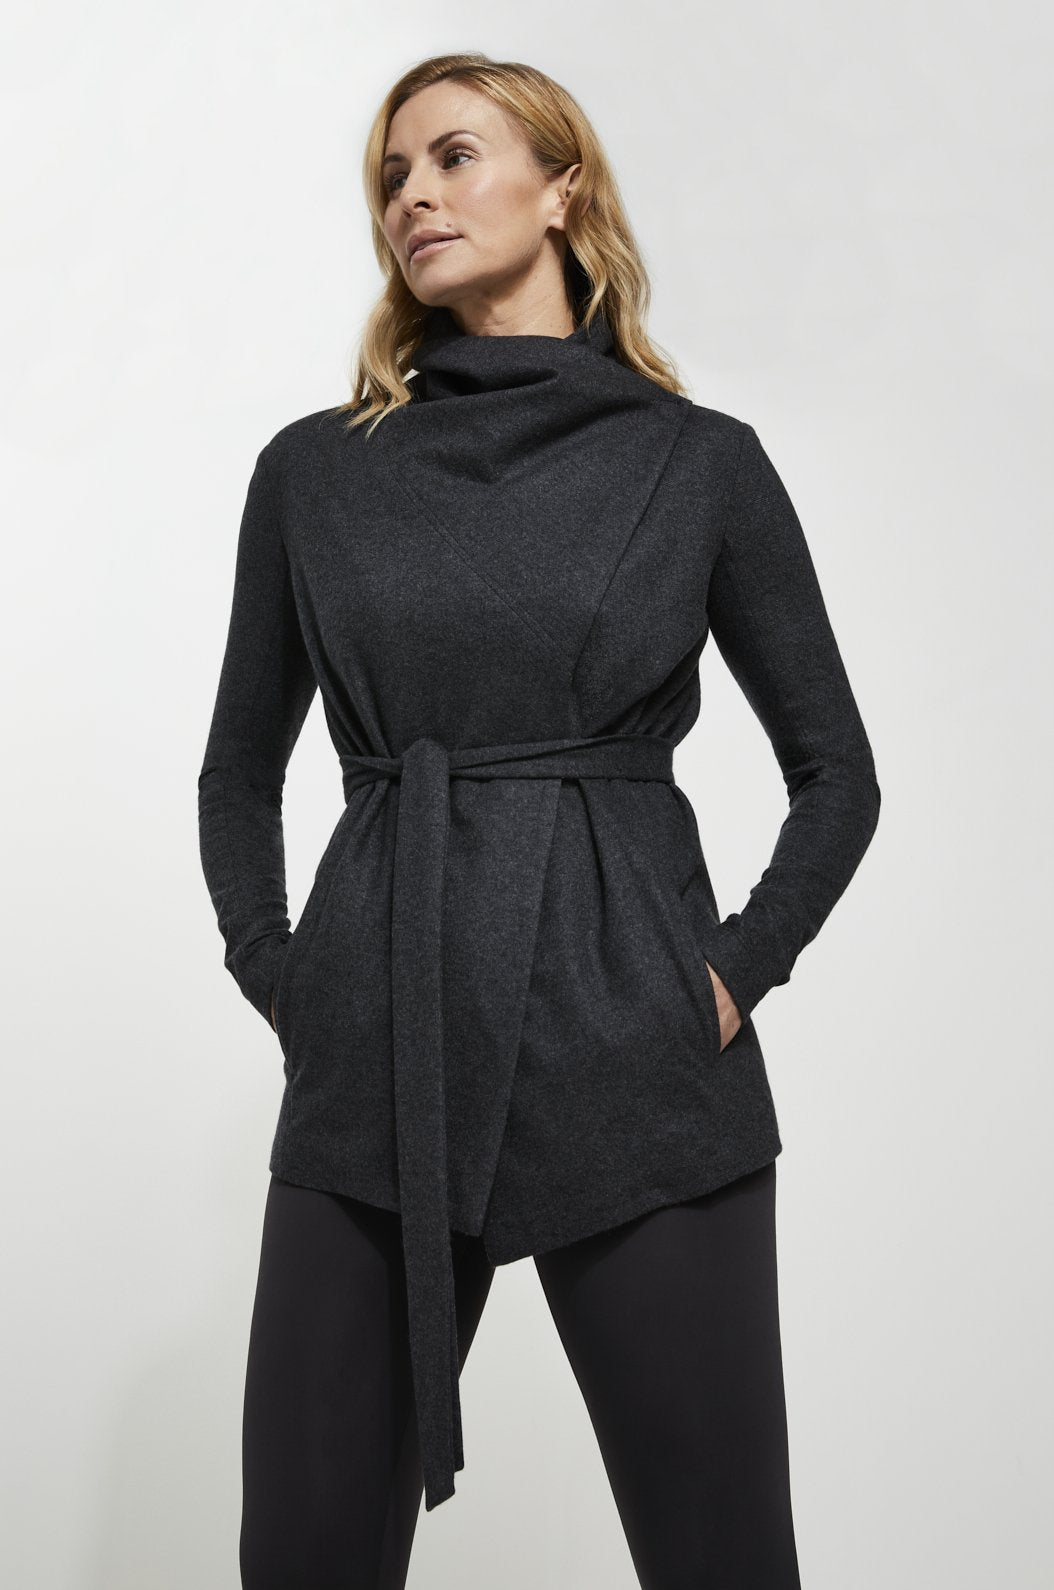 ROYL NYC | Luxury loungewear - ITALIAN CASHMERE WRAP JACKET | ROYL